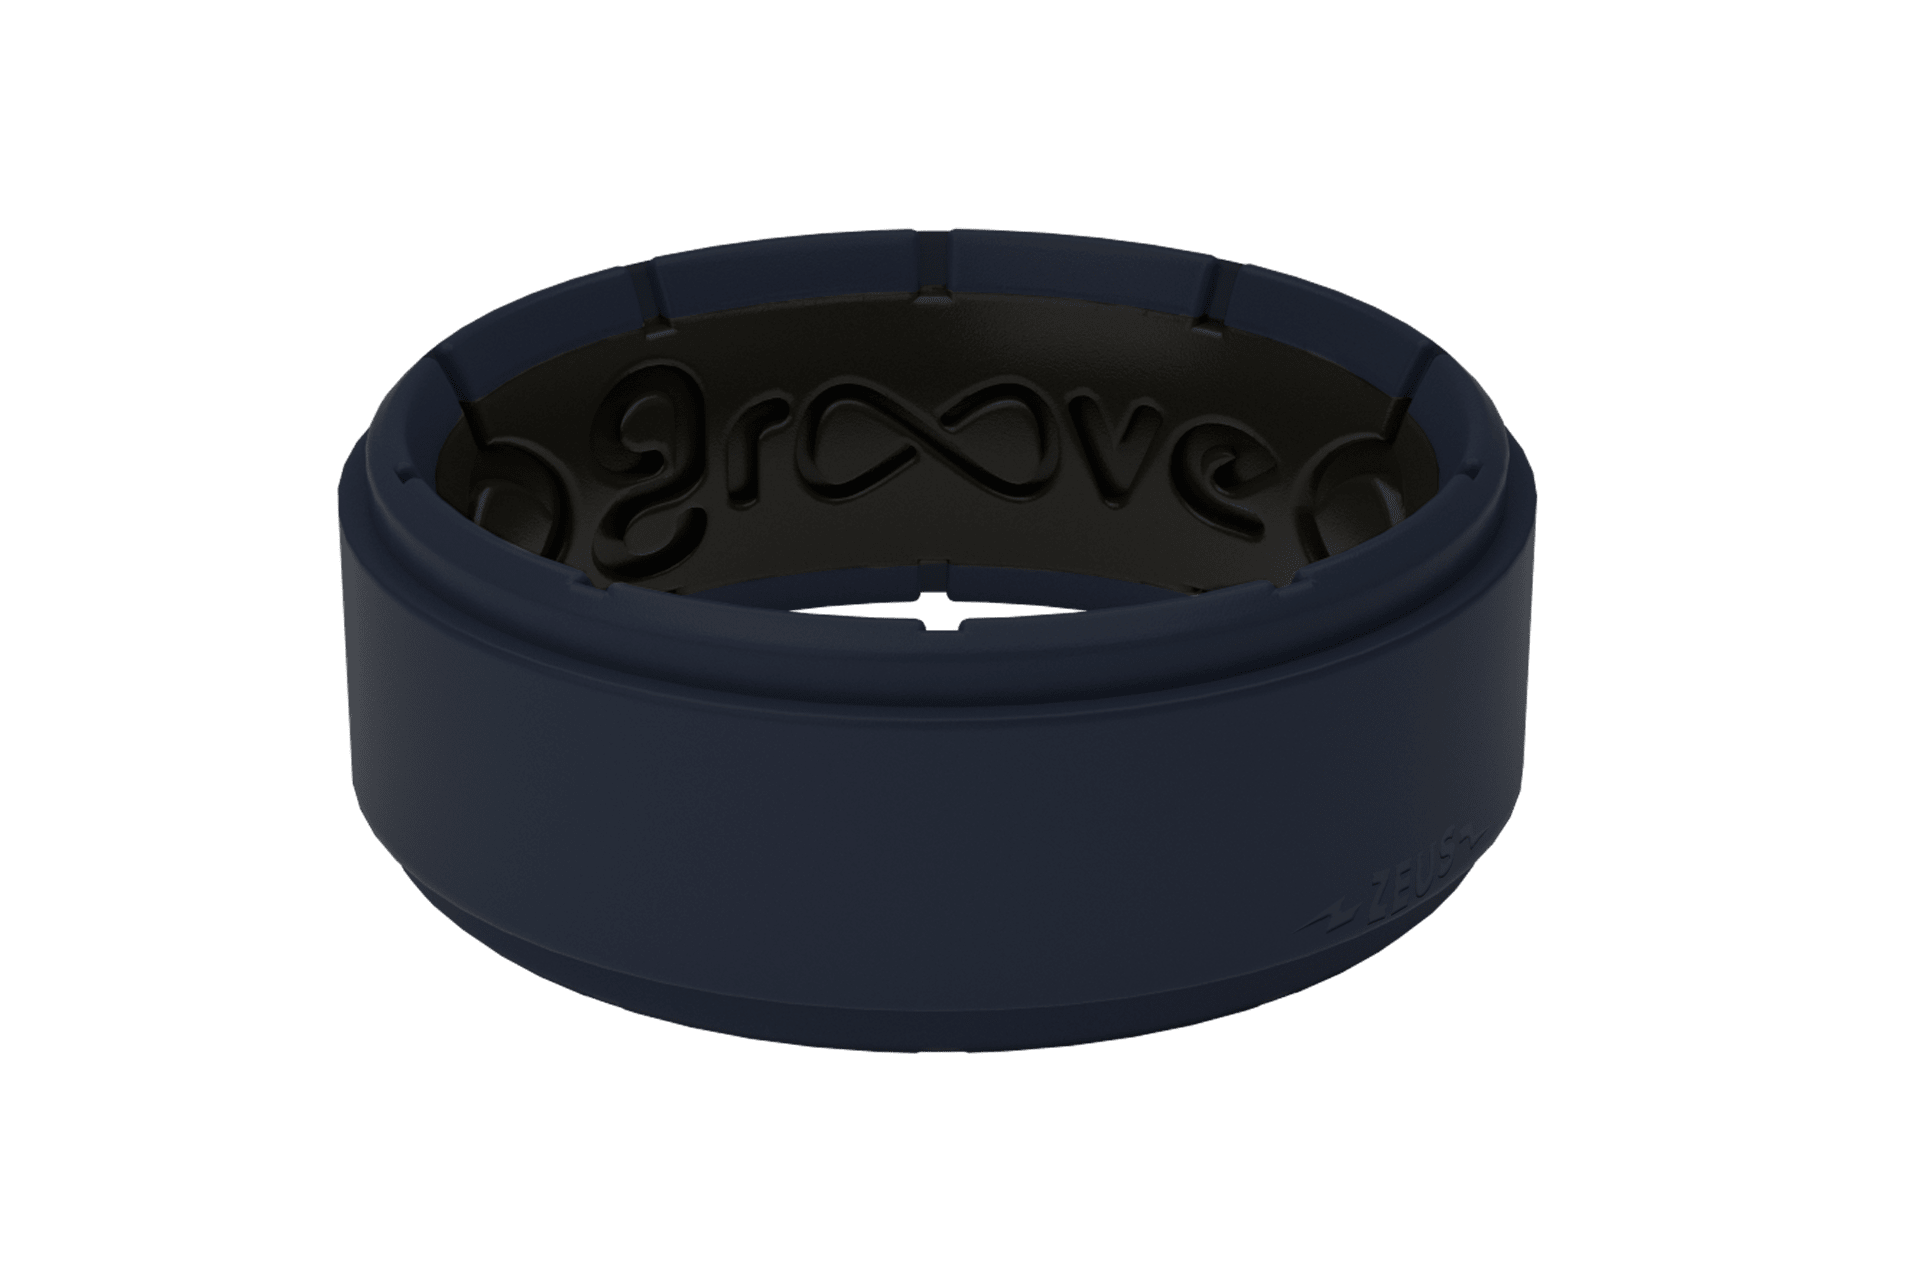 Zeus Step Deep Navy/Black - Groove Life Silicone Wedding Rings